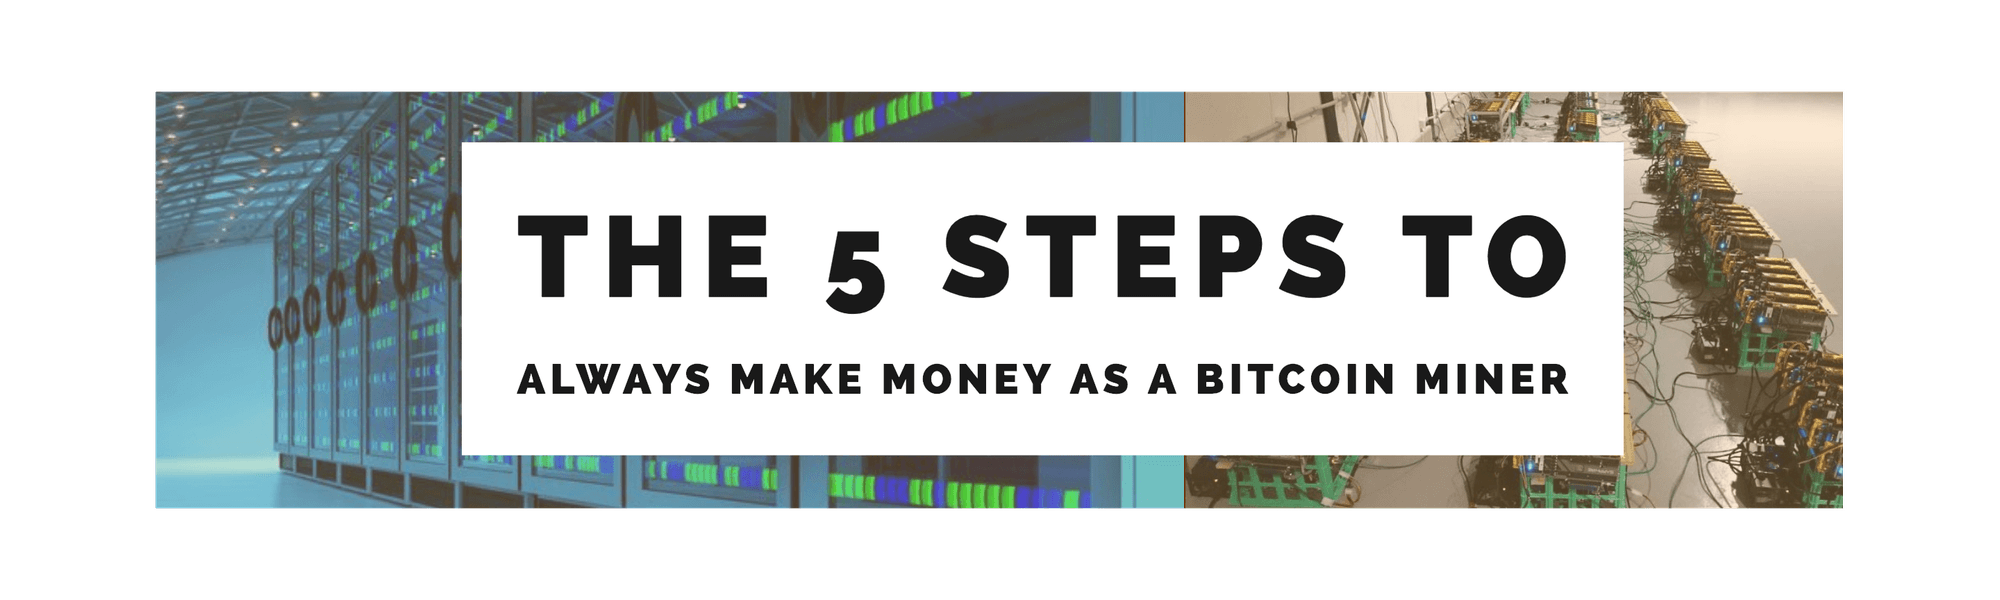 5 Steps To Always Make Money As A Bitcoin Miner